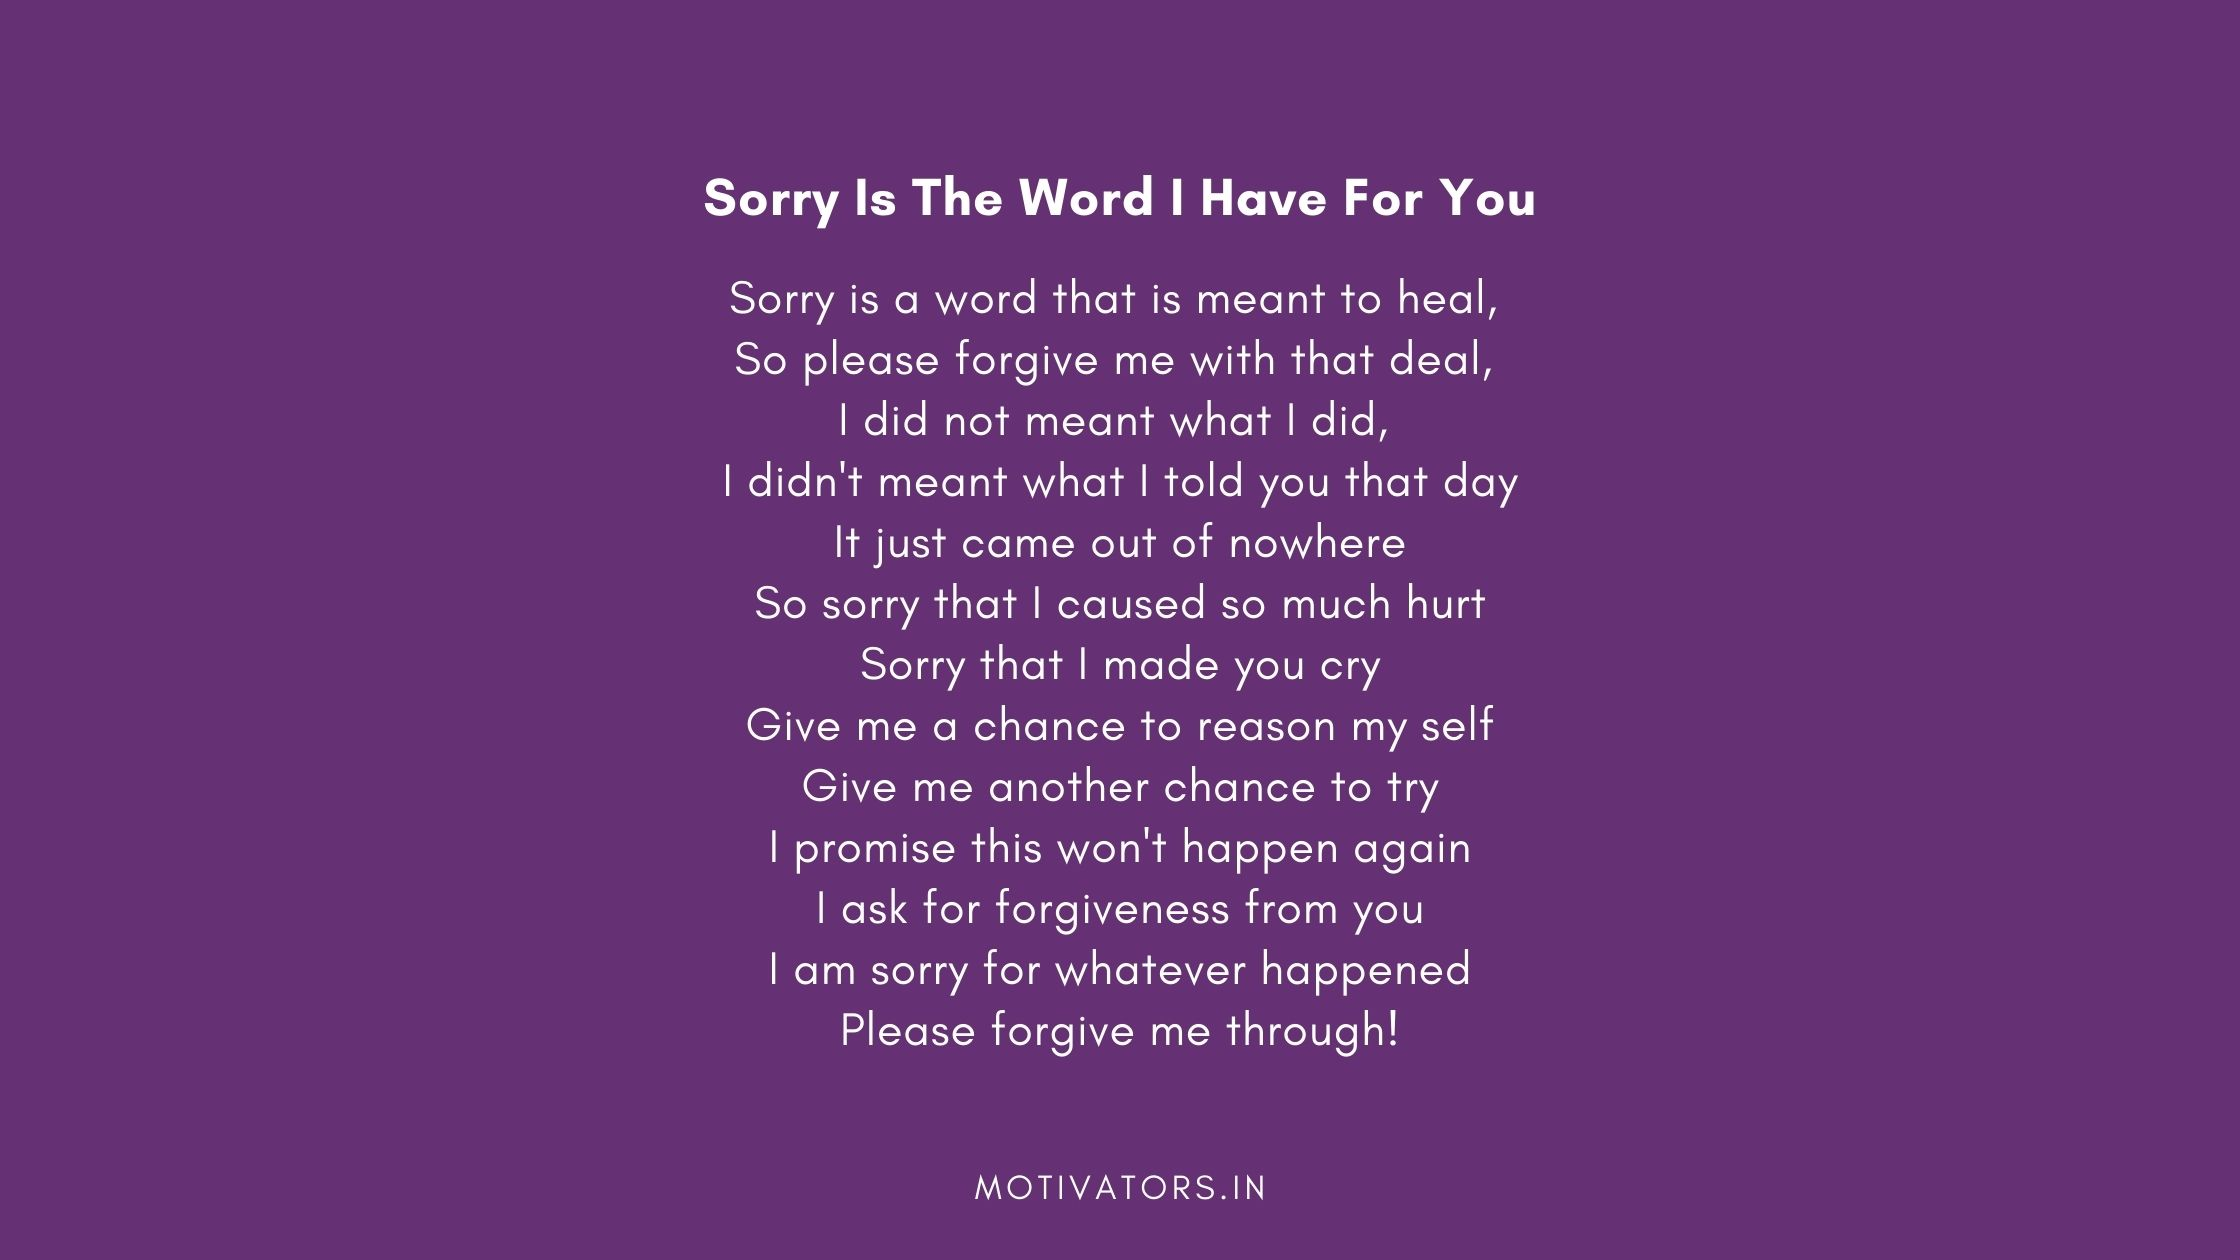 Sorry Is The Word I Have For You